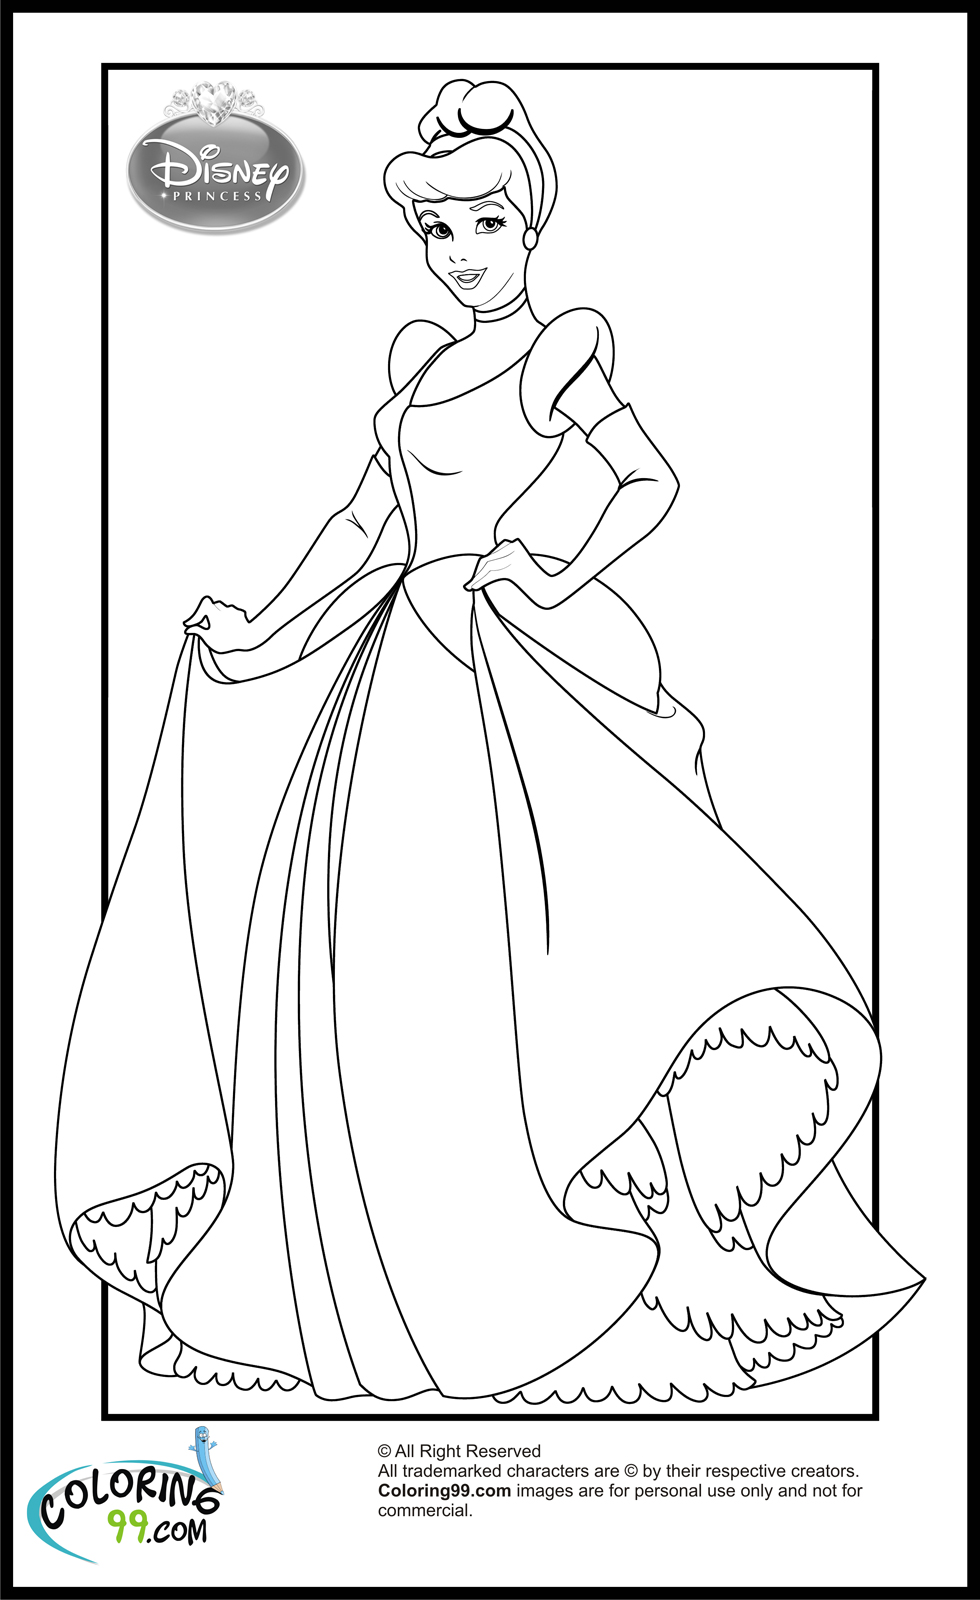 coloring printables garfield coloring pages to download and print for free printables coloring